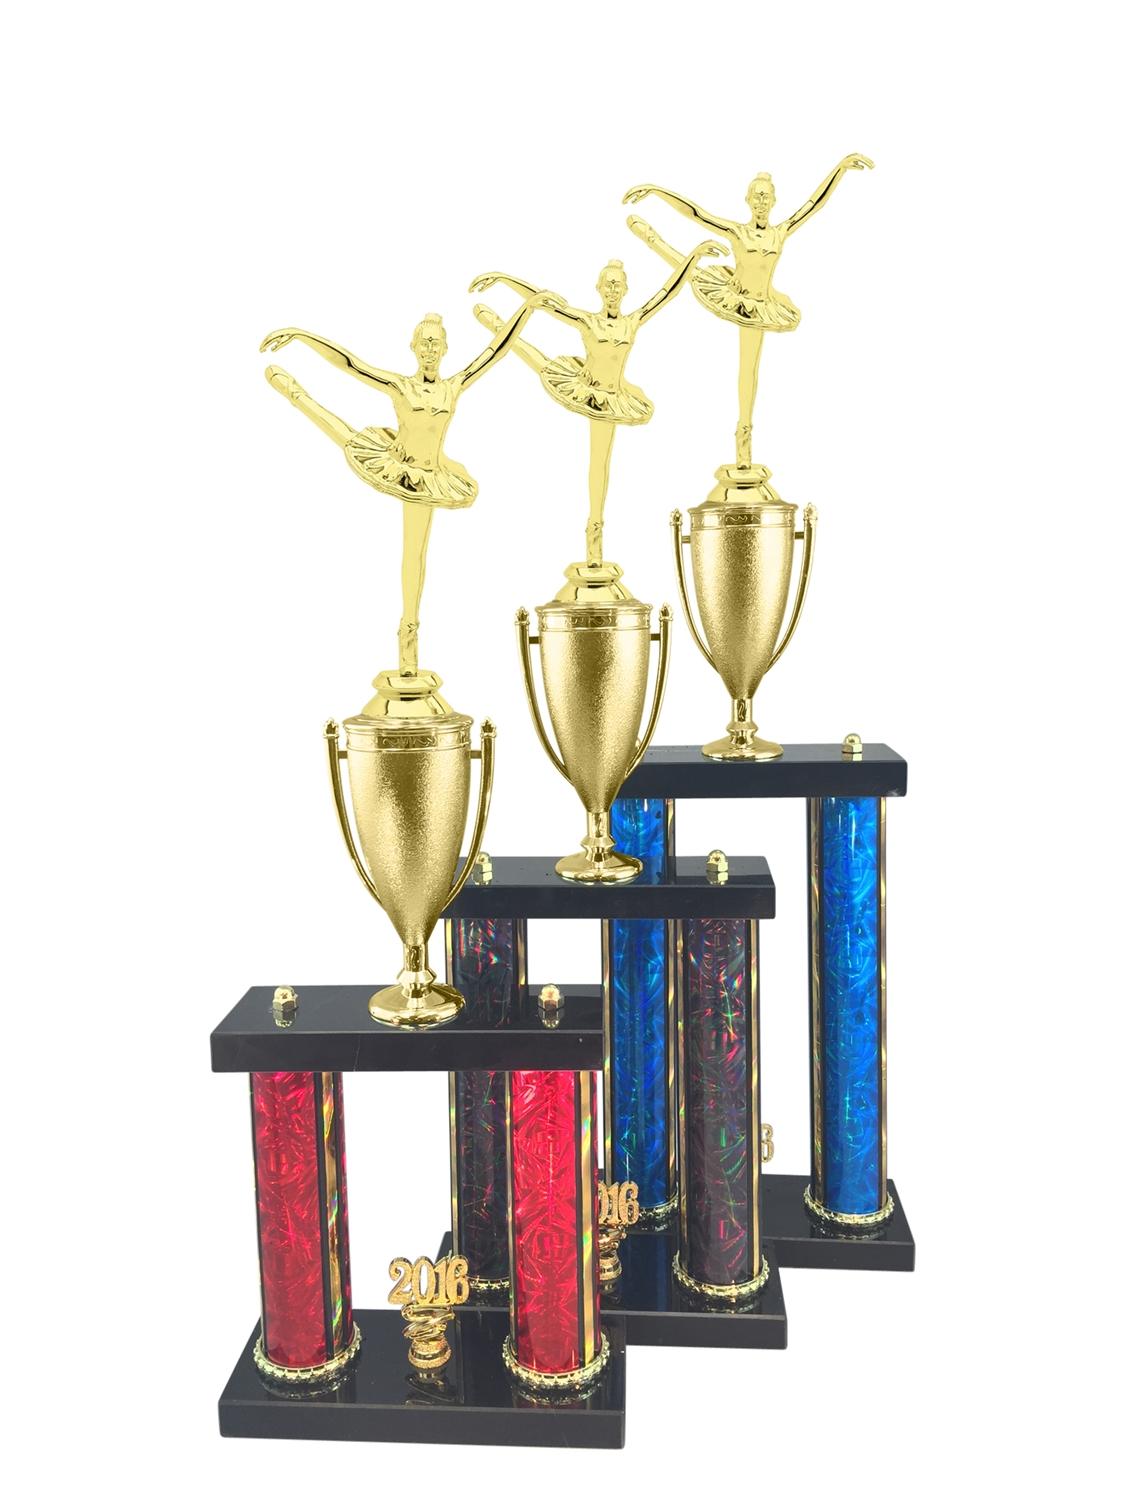 2 Post Ballet Trophy in 3 Sizes - in 11 Color & 3 Size Options